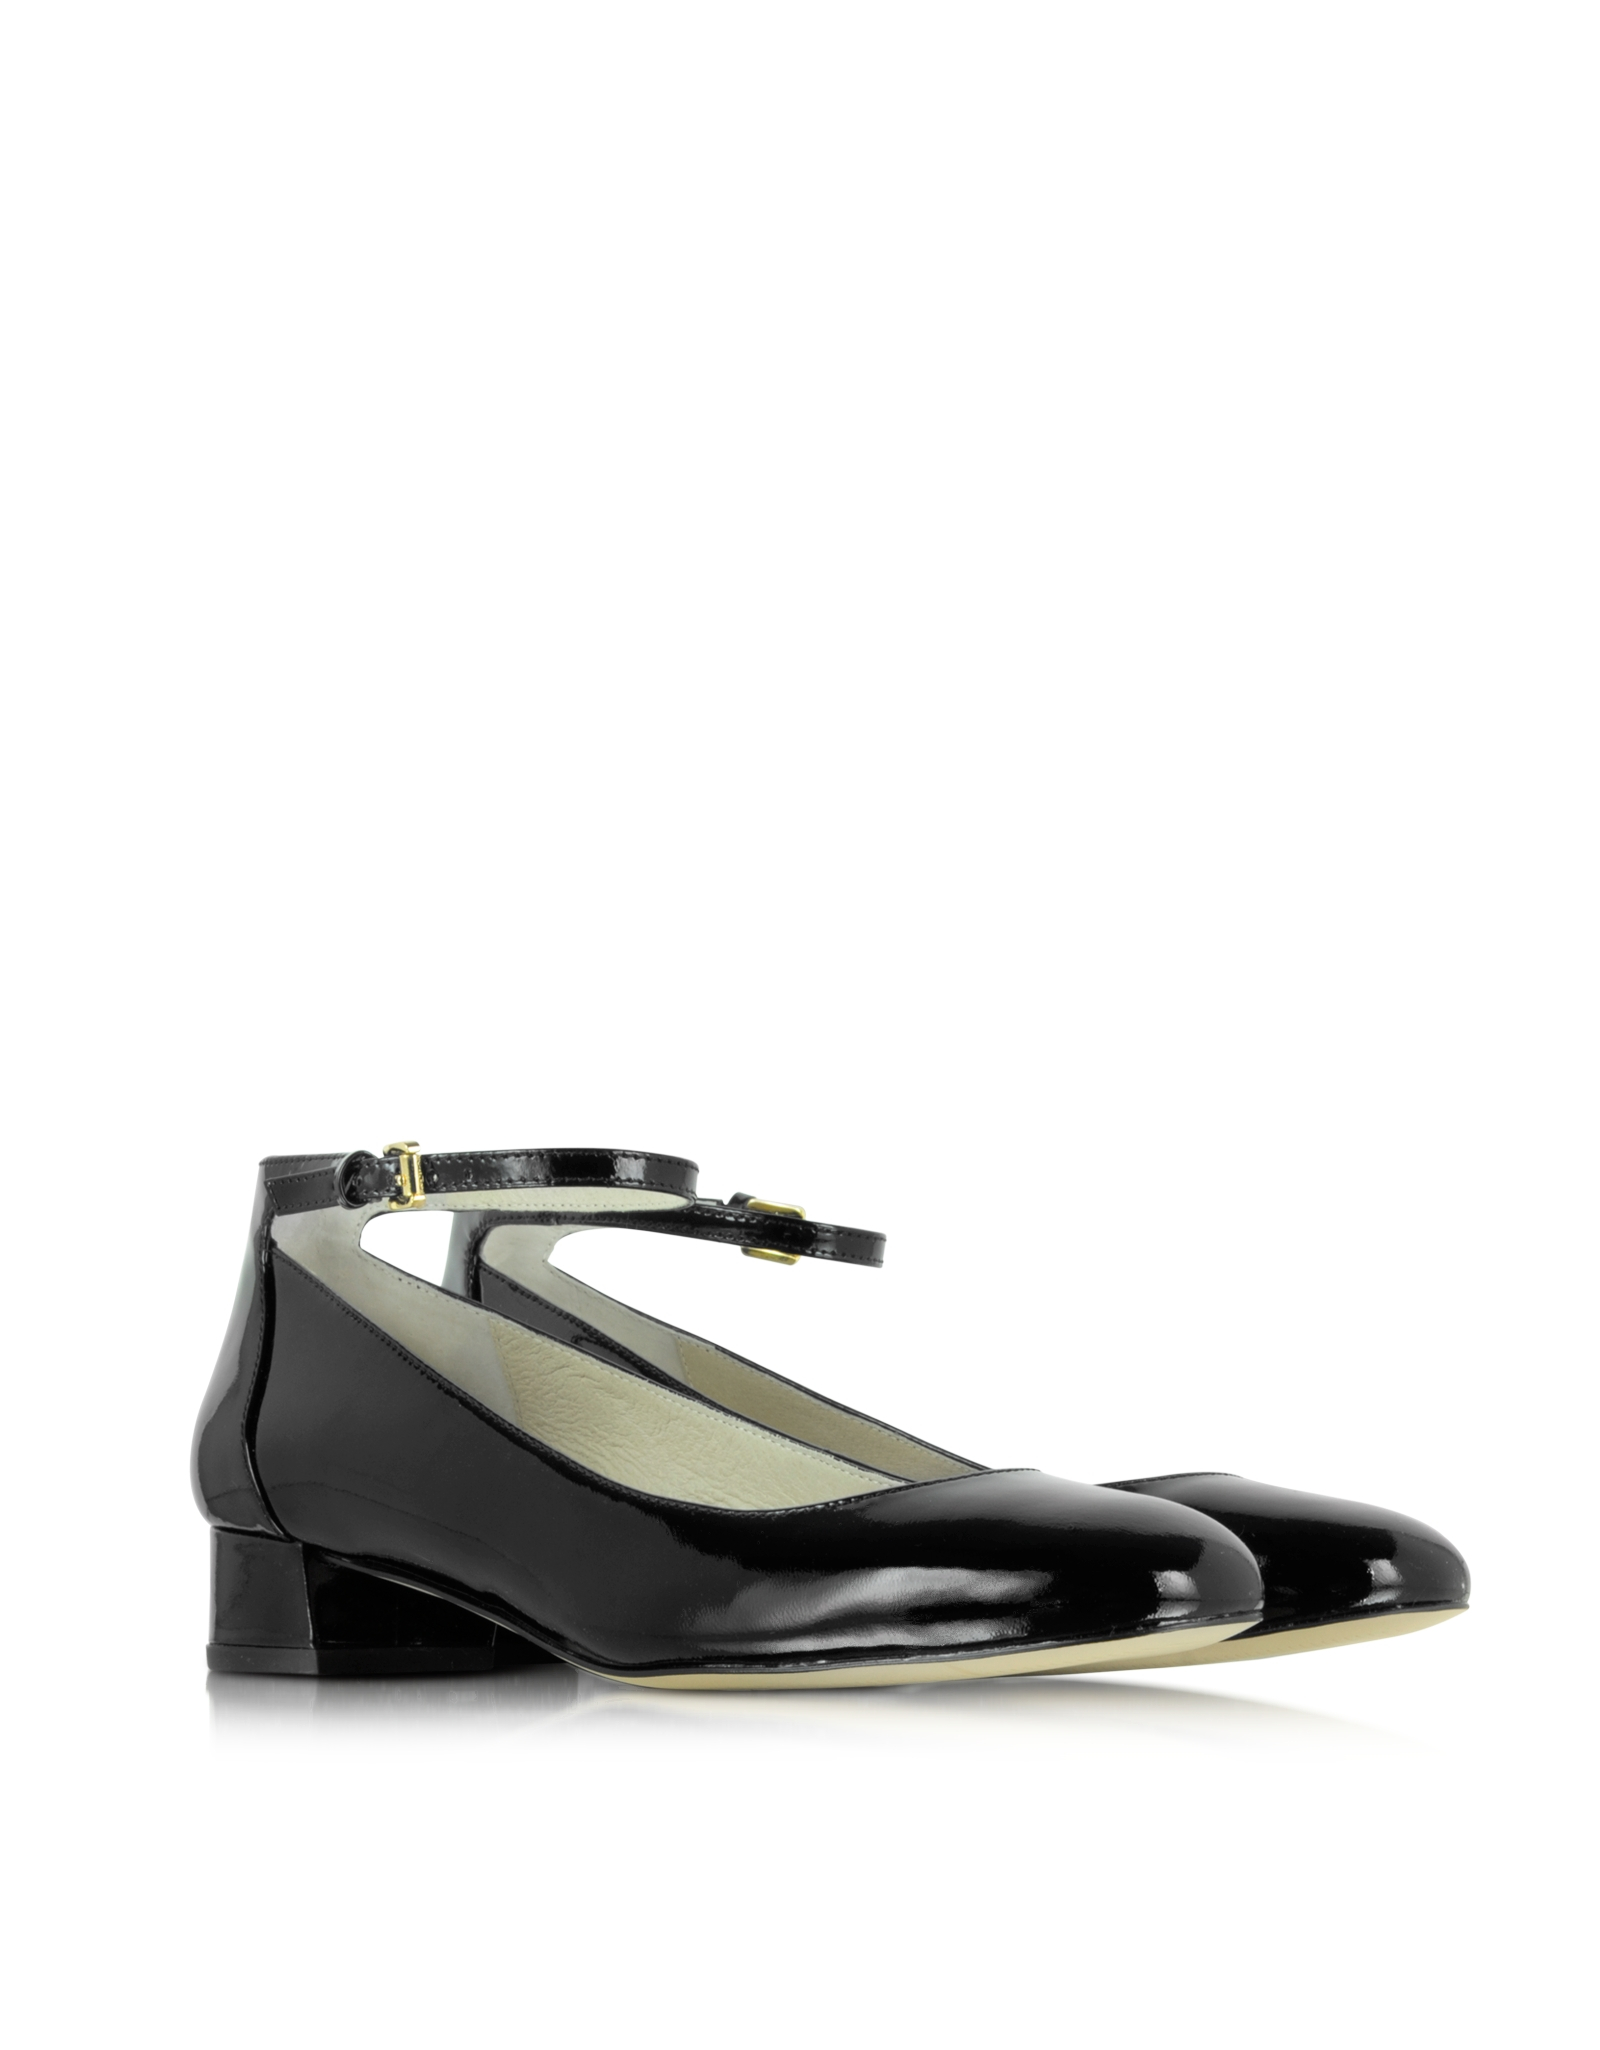 14fa2e70c1ec Lyst - Michael Kors Esther Black Patent Leather Ankle Strap Shoe in ...